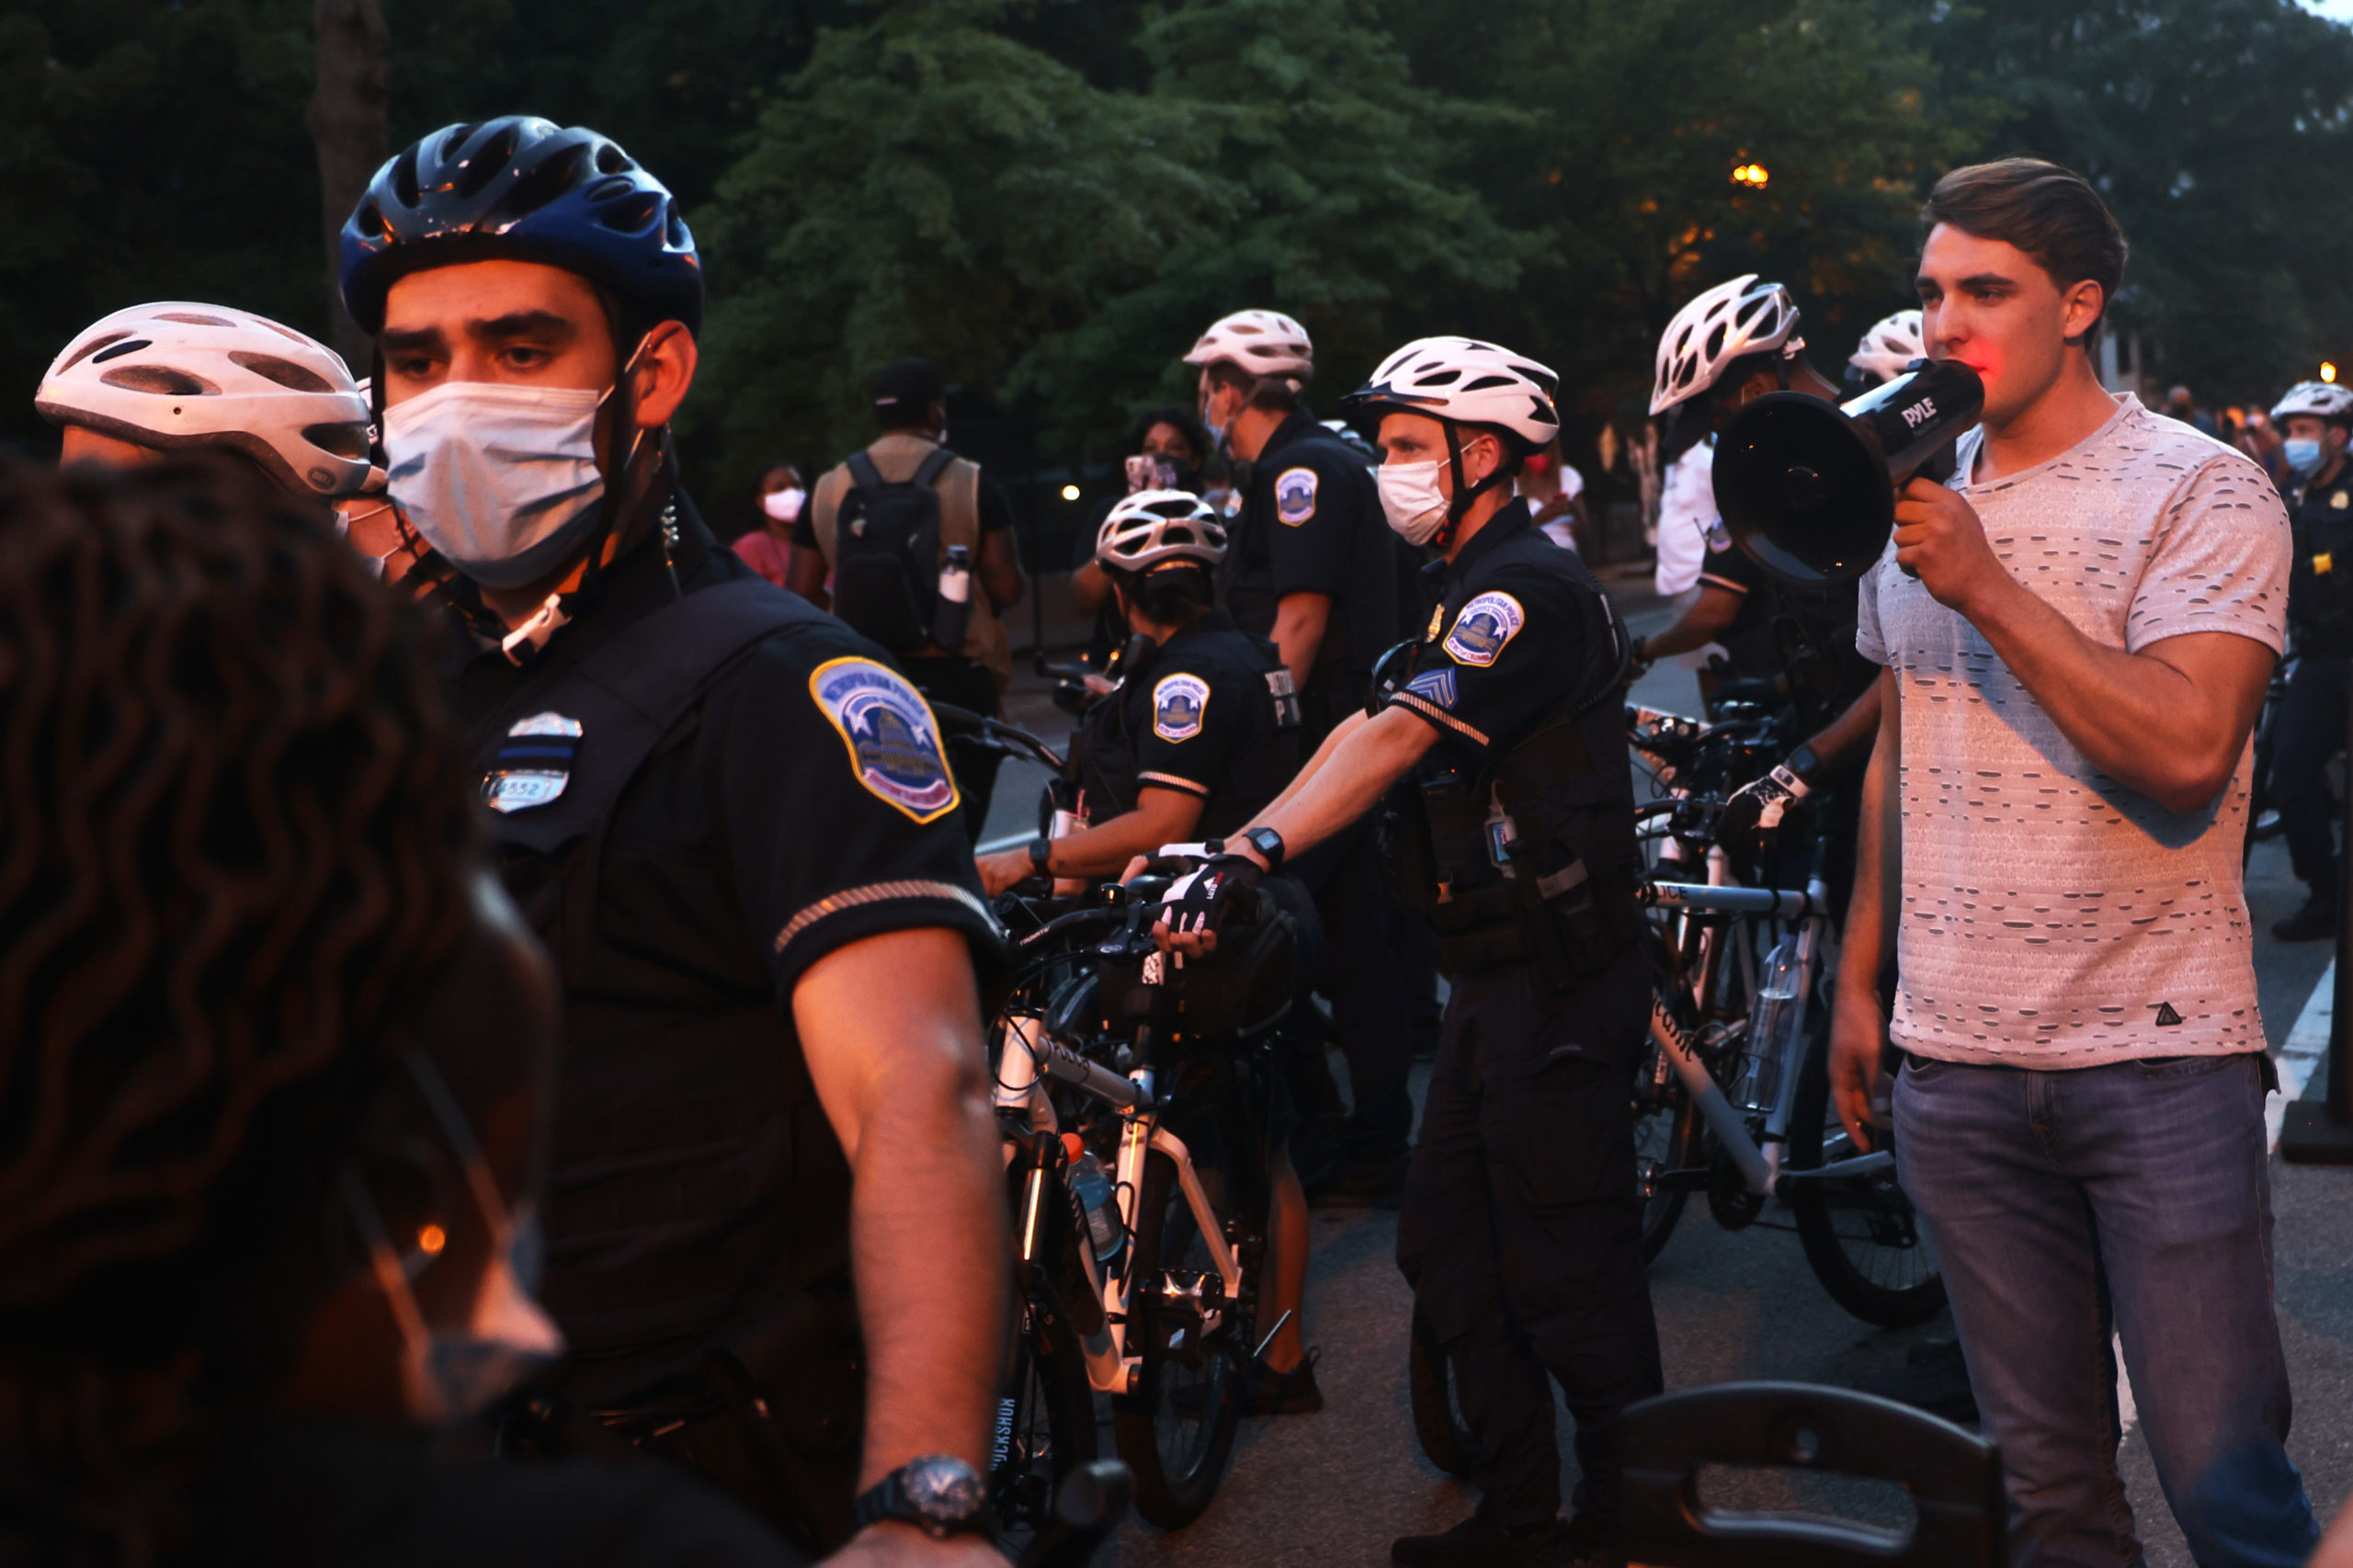 """WASHINGTON, DC - AUGUST 27: Police officers surround Jacob Wohl as he taunts protesters during a """"Trump/Pence Out Now"""" rally at Black Lives Matter plaza August 27, 2020 in Washington, DC. Protesters gathered as the Republican National Convention on its final night was set to nominate President Donald Trump for a second term in office. (Photo by Michael M. Santiago/Getty Images)"""